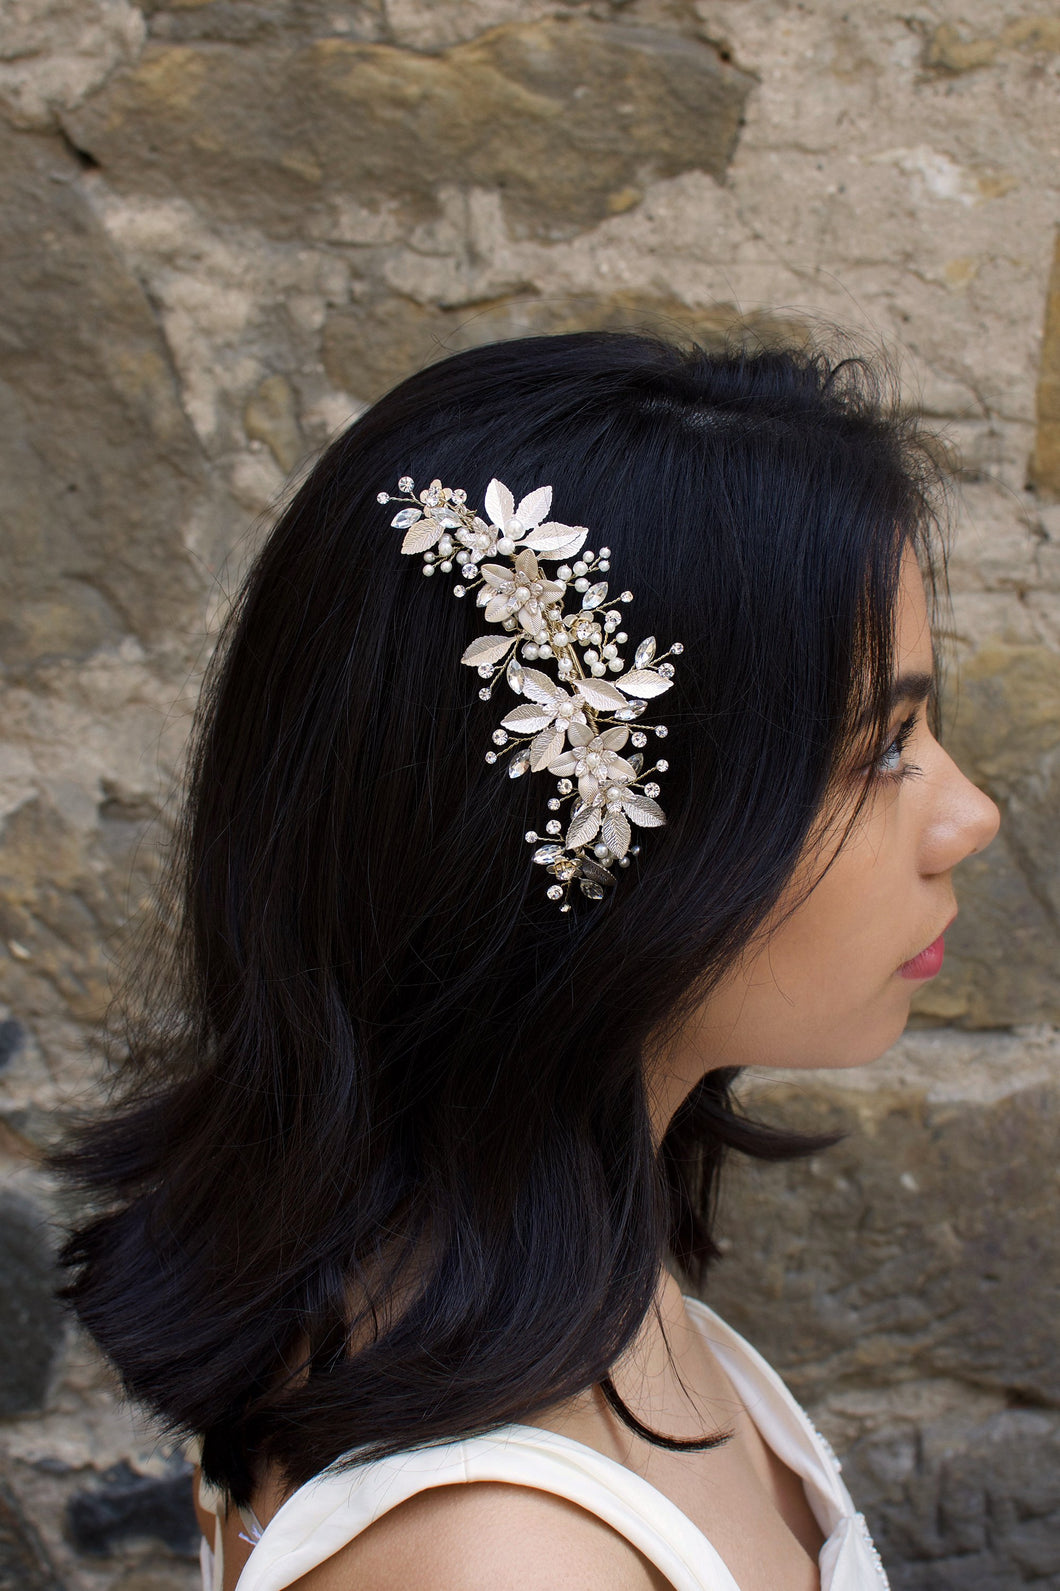 Dark haired model with long hair wears a side comb of pale gold leaves at the side of her head. With a stone wall background